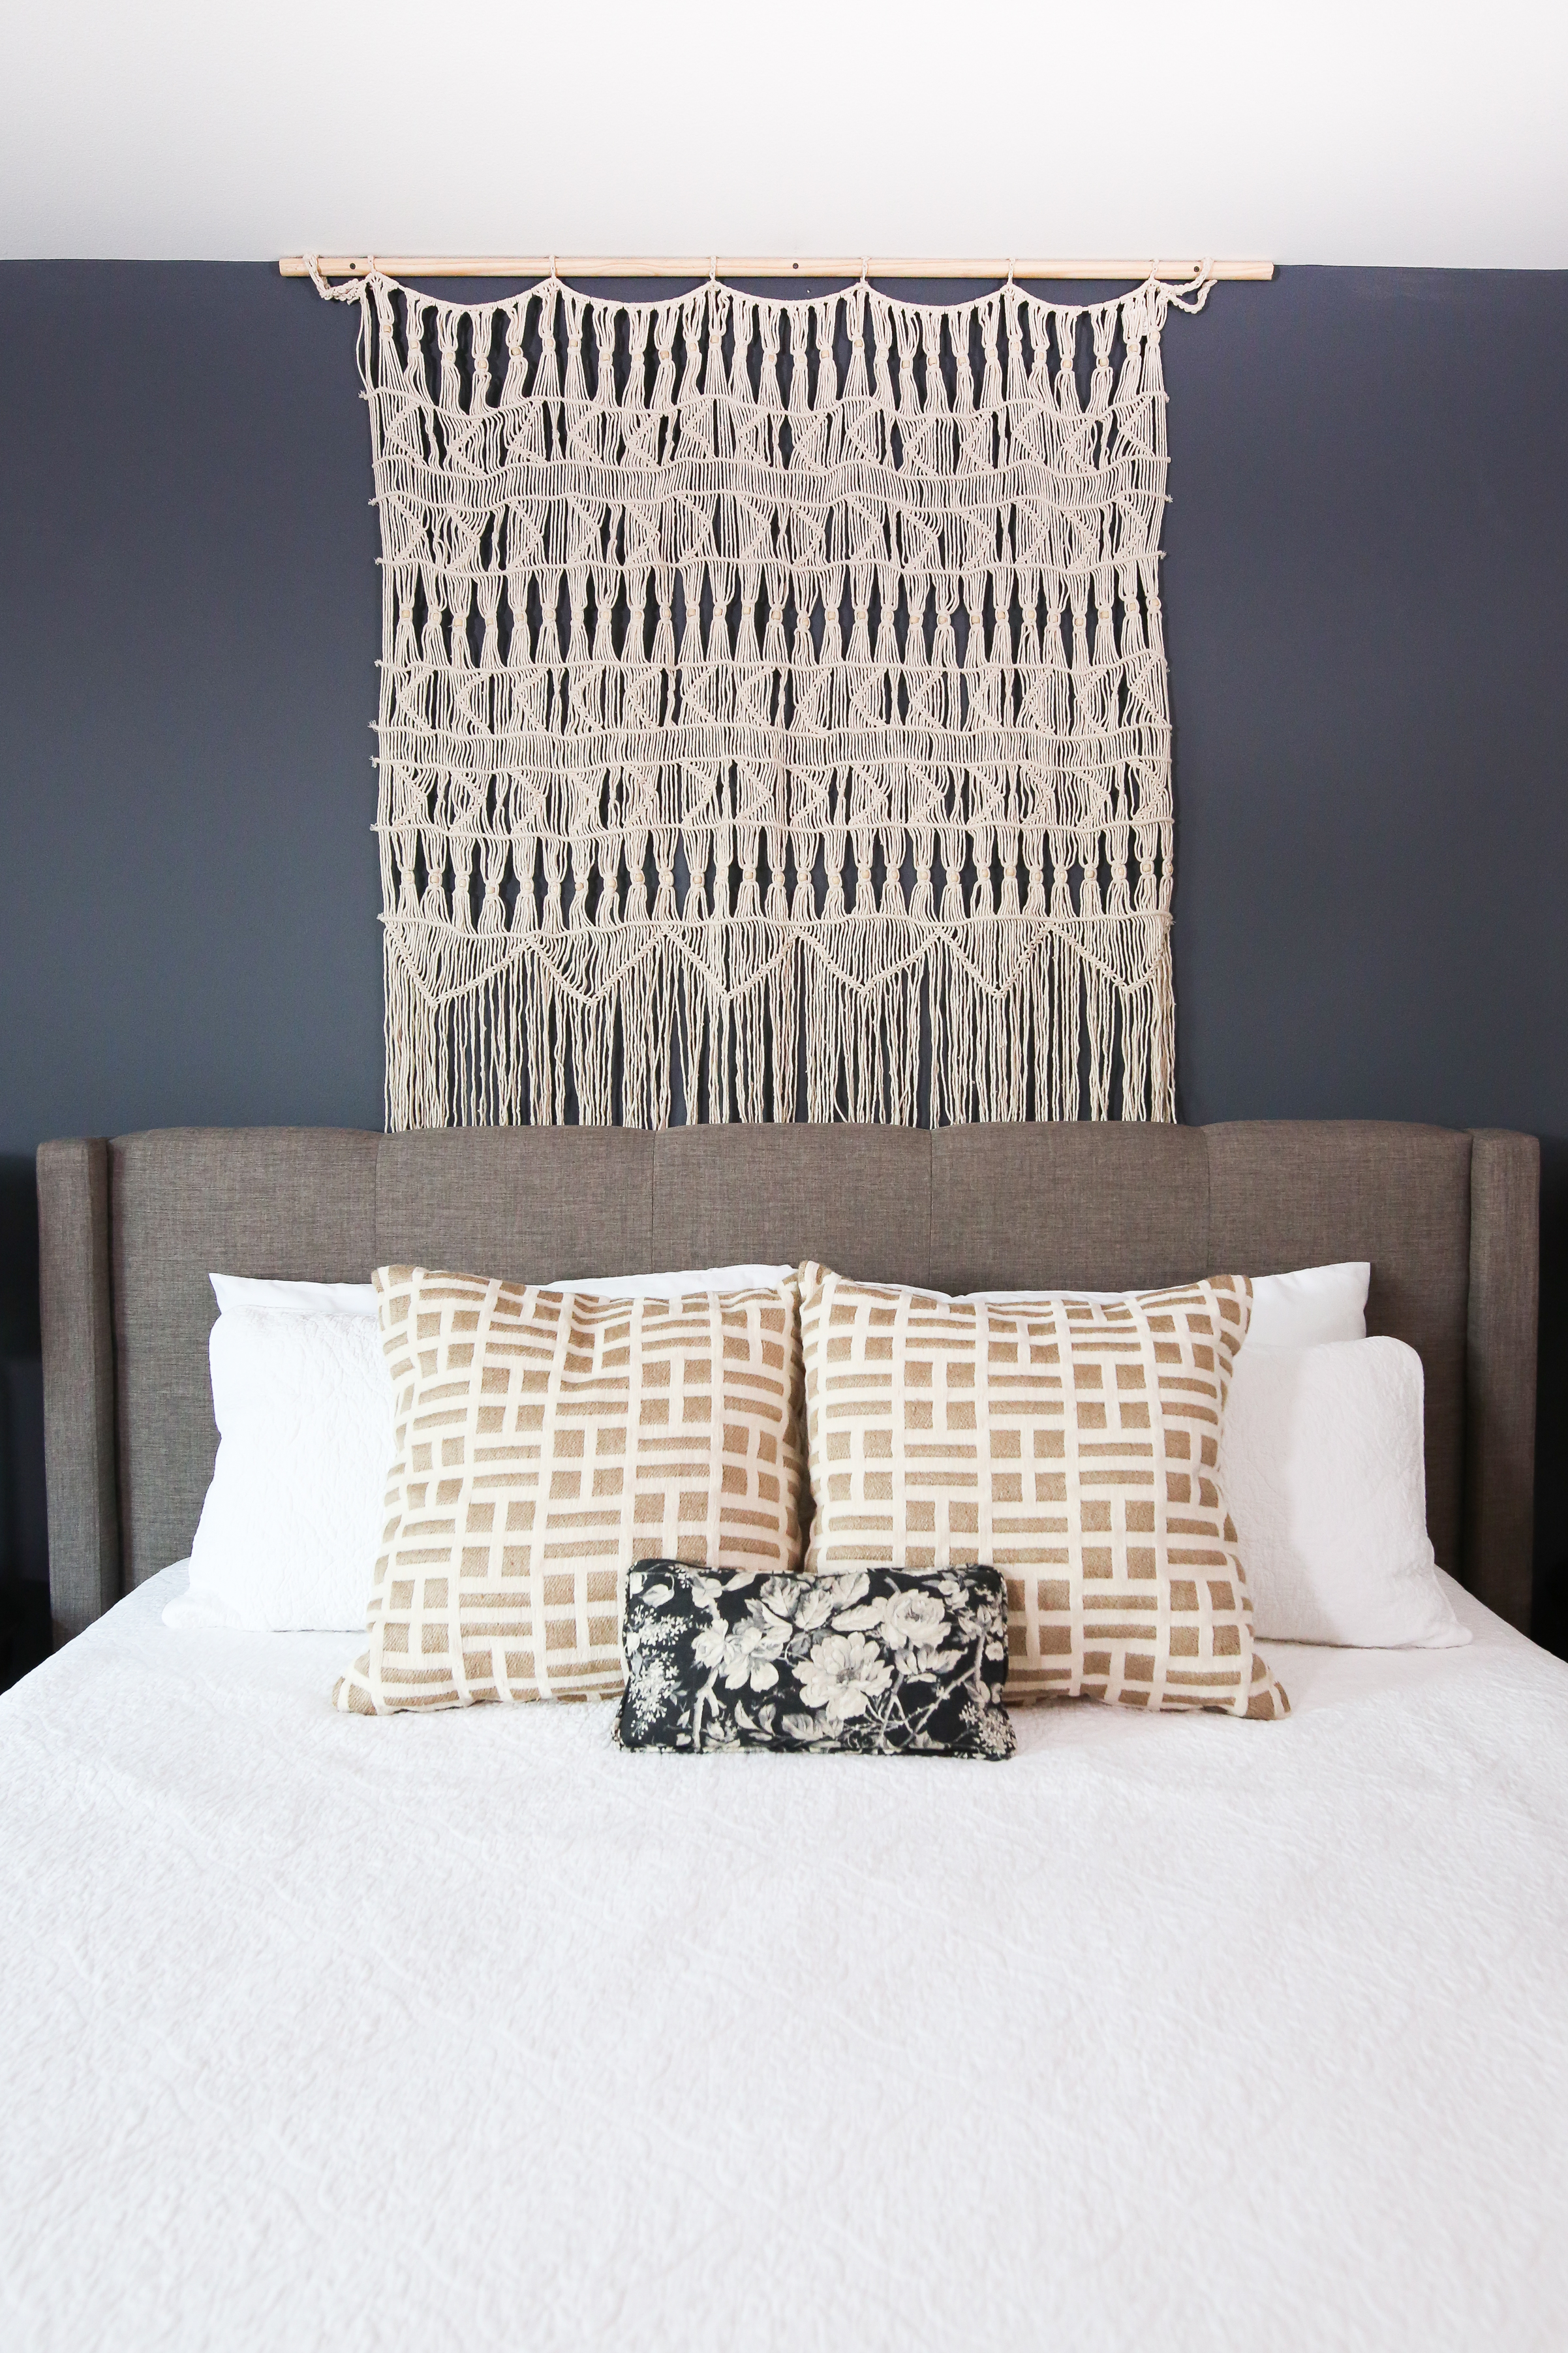 You Canu0027t Deny The Sense Of Completion That A Headboard Adds To A Bedroom.  It Brings A Room Together And Adds A Design Touch That Makes The Space So  Much ...